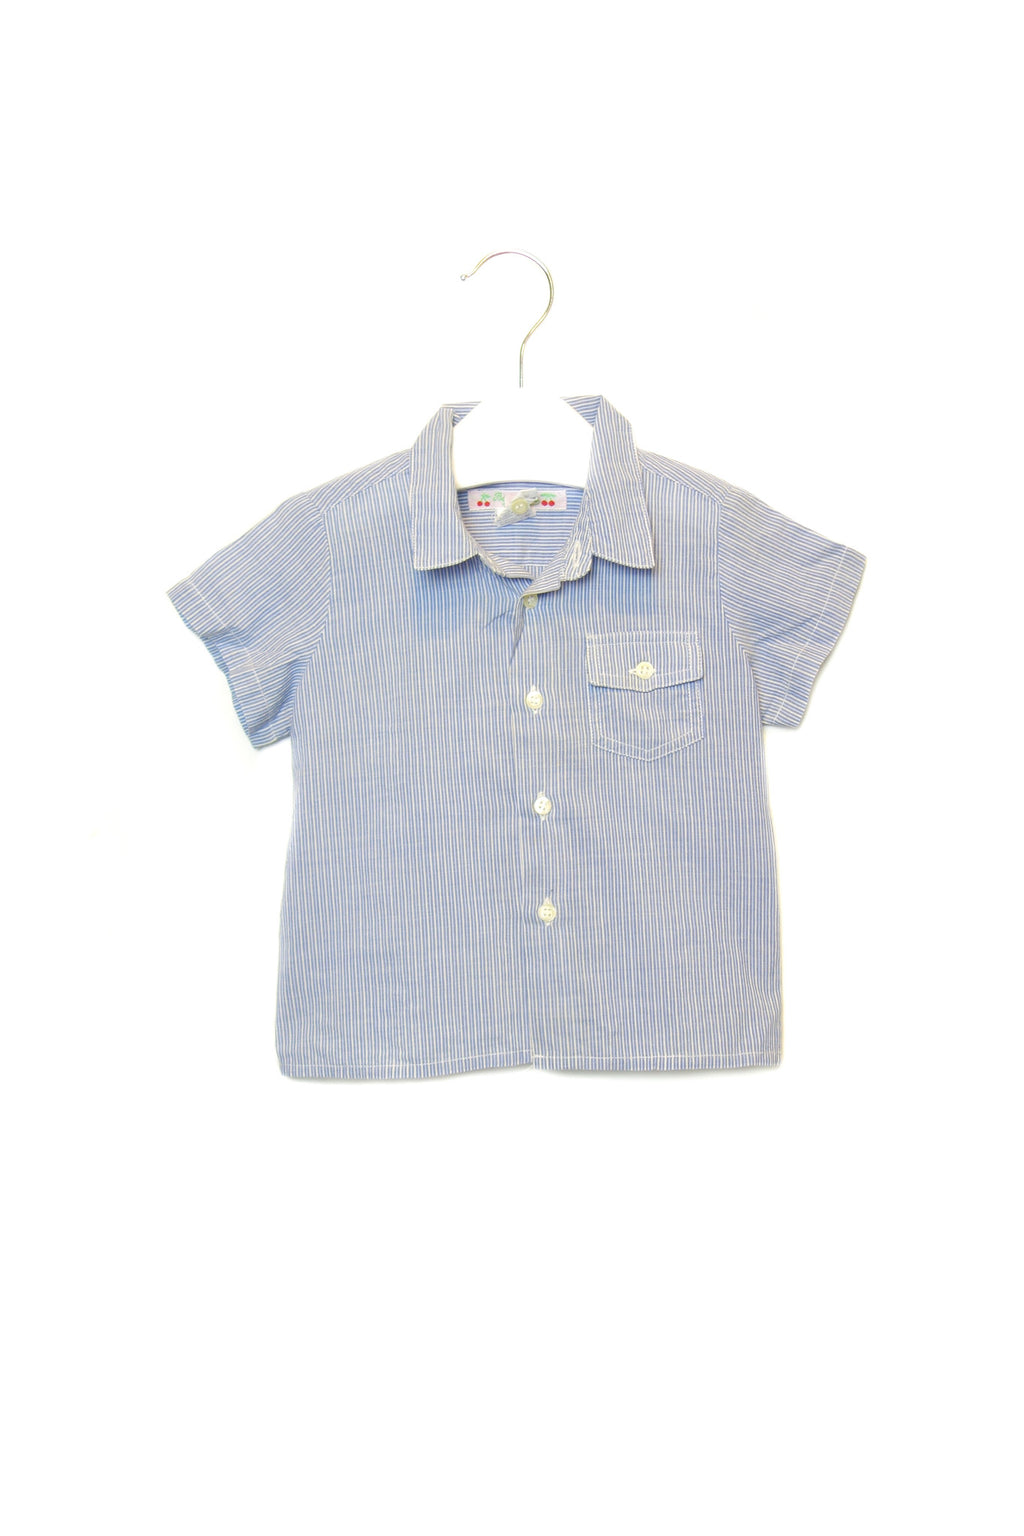 10001764 Bonpoint Baby~Shirt 18M at Retykle